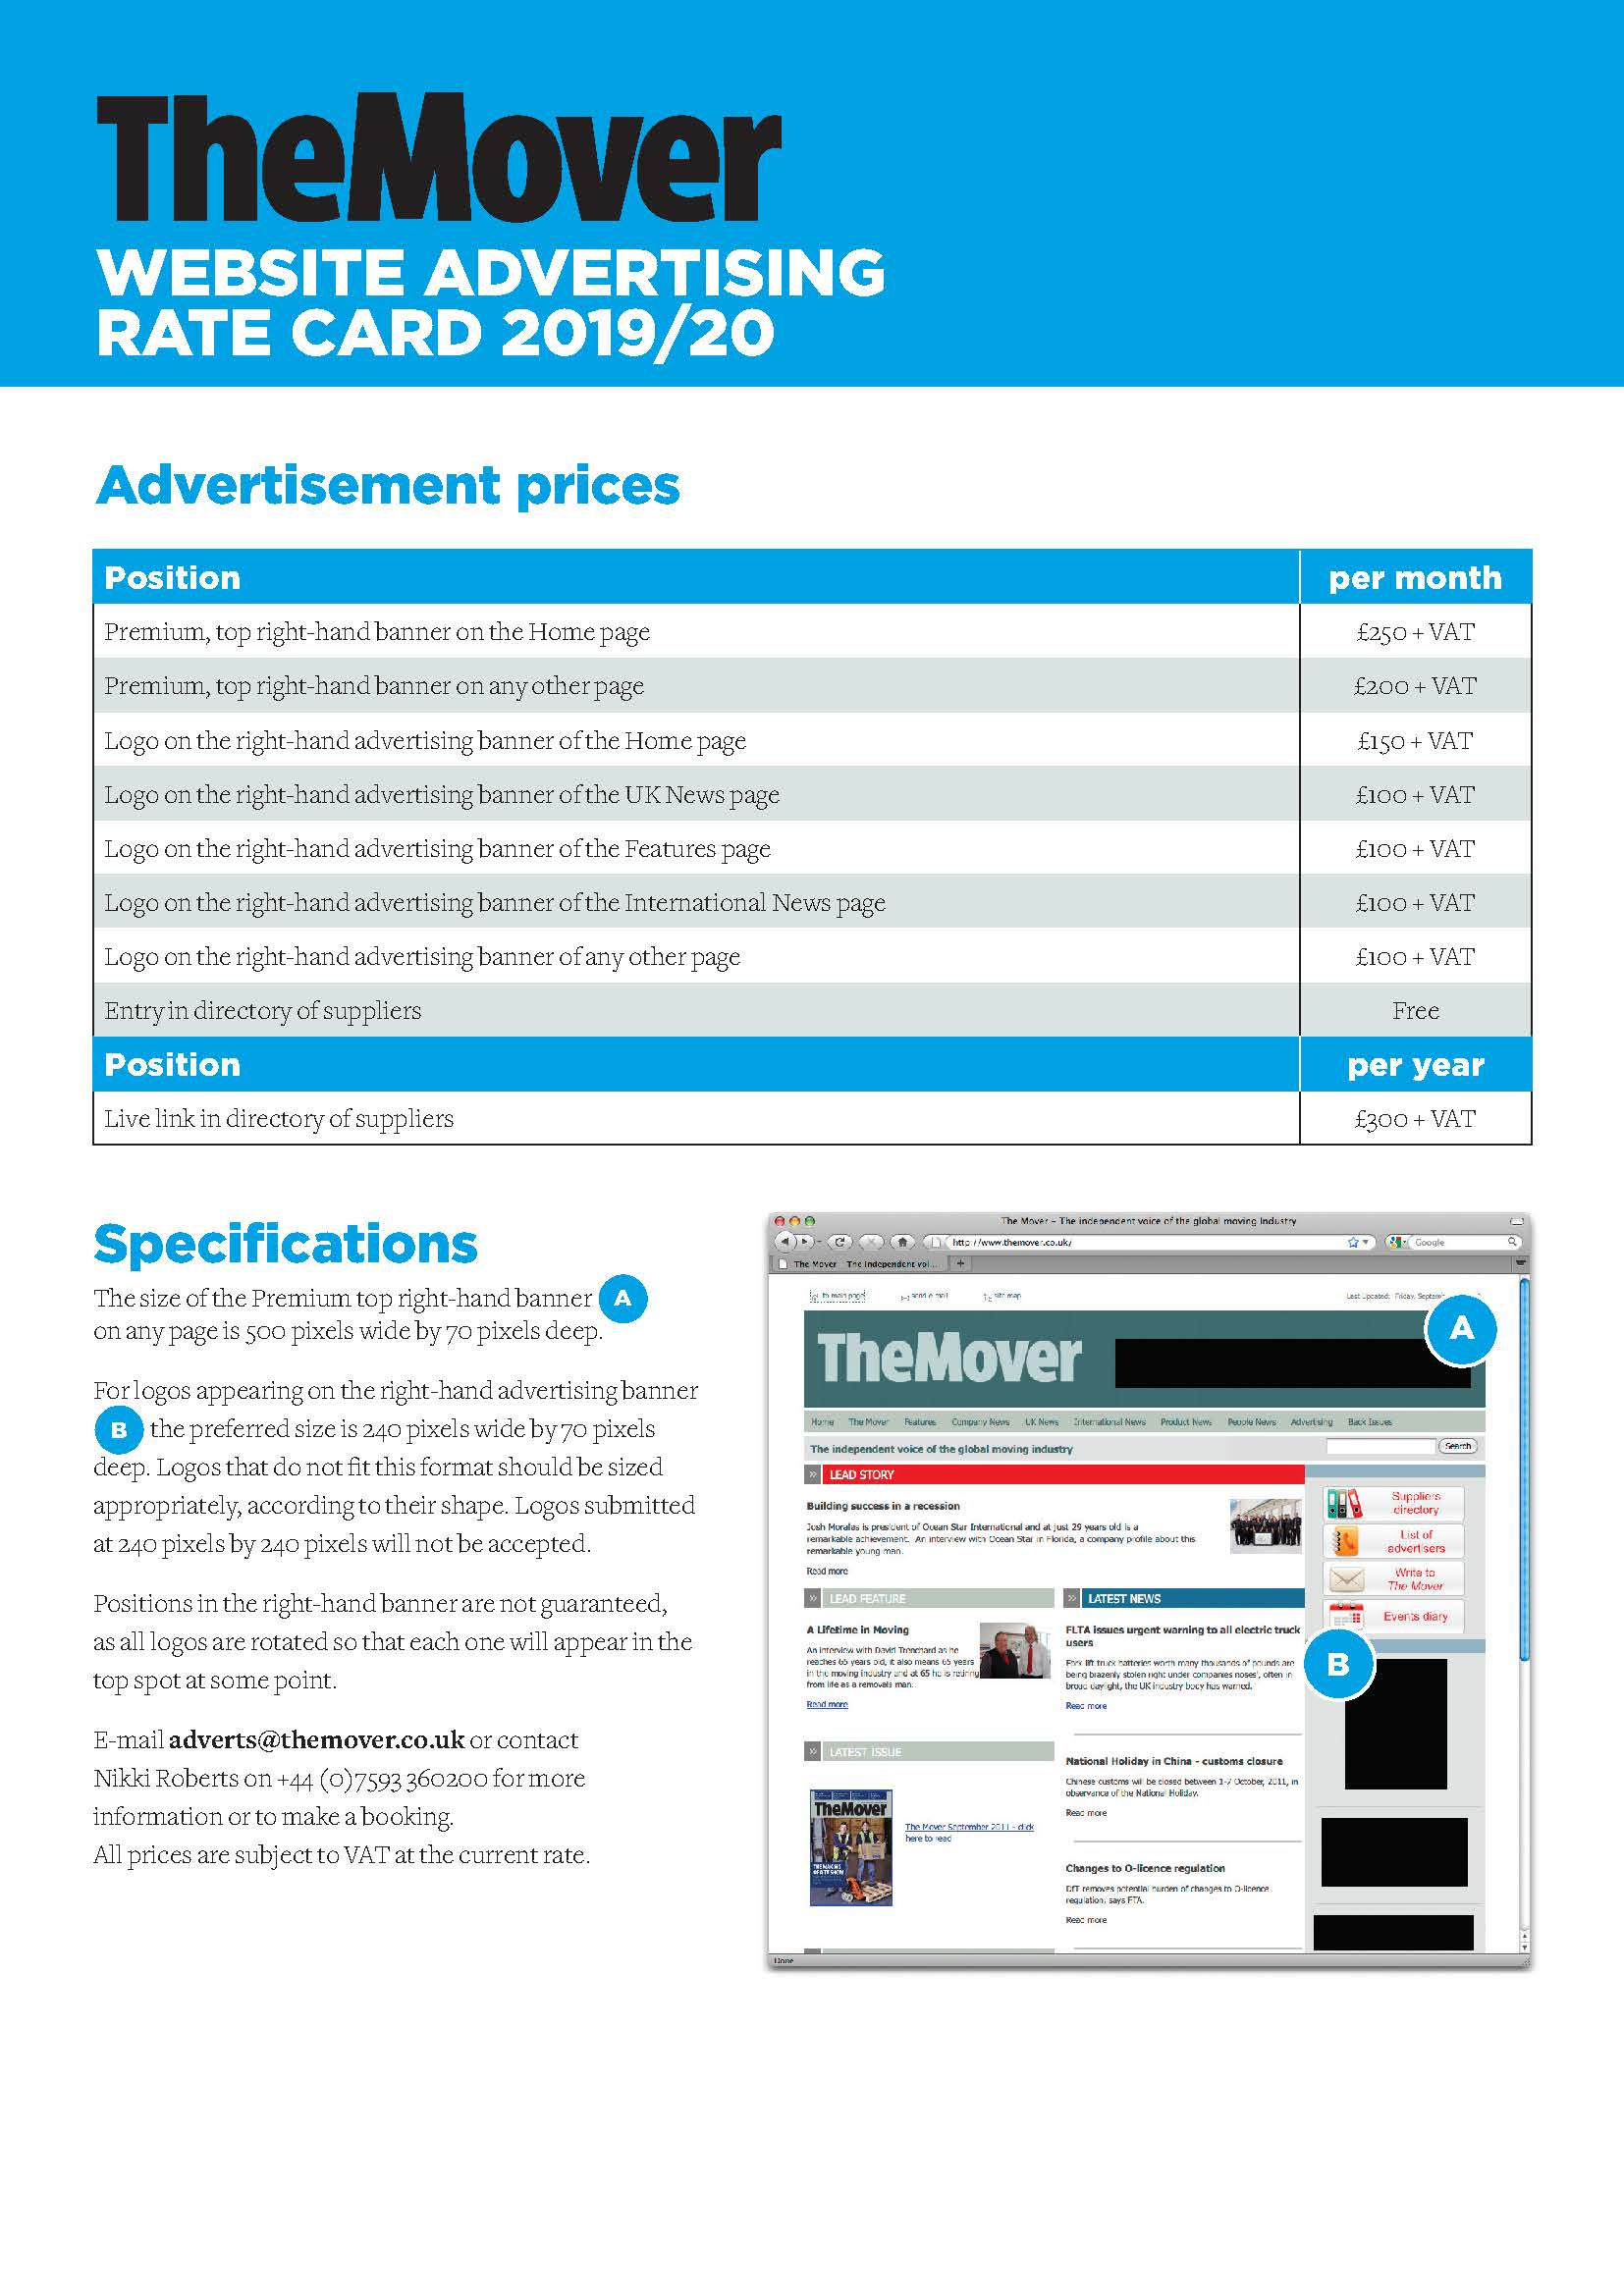 The Mover magazine website rate card 2019-20